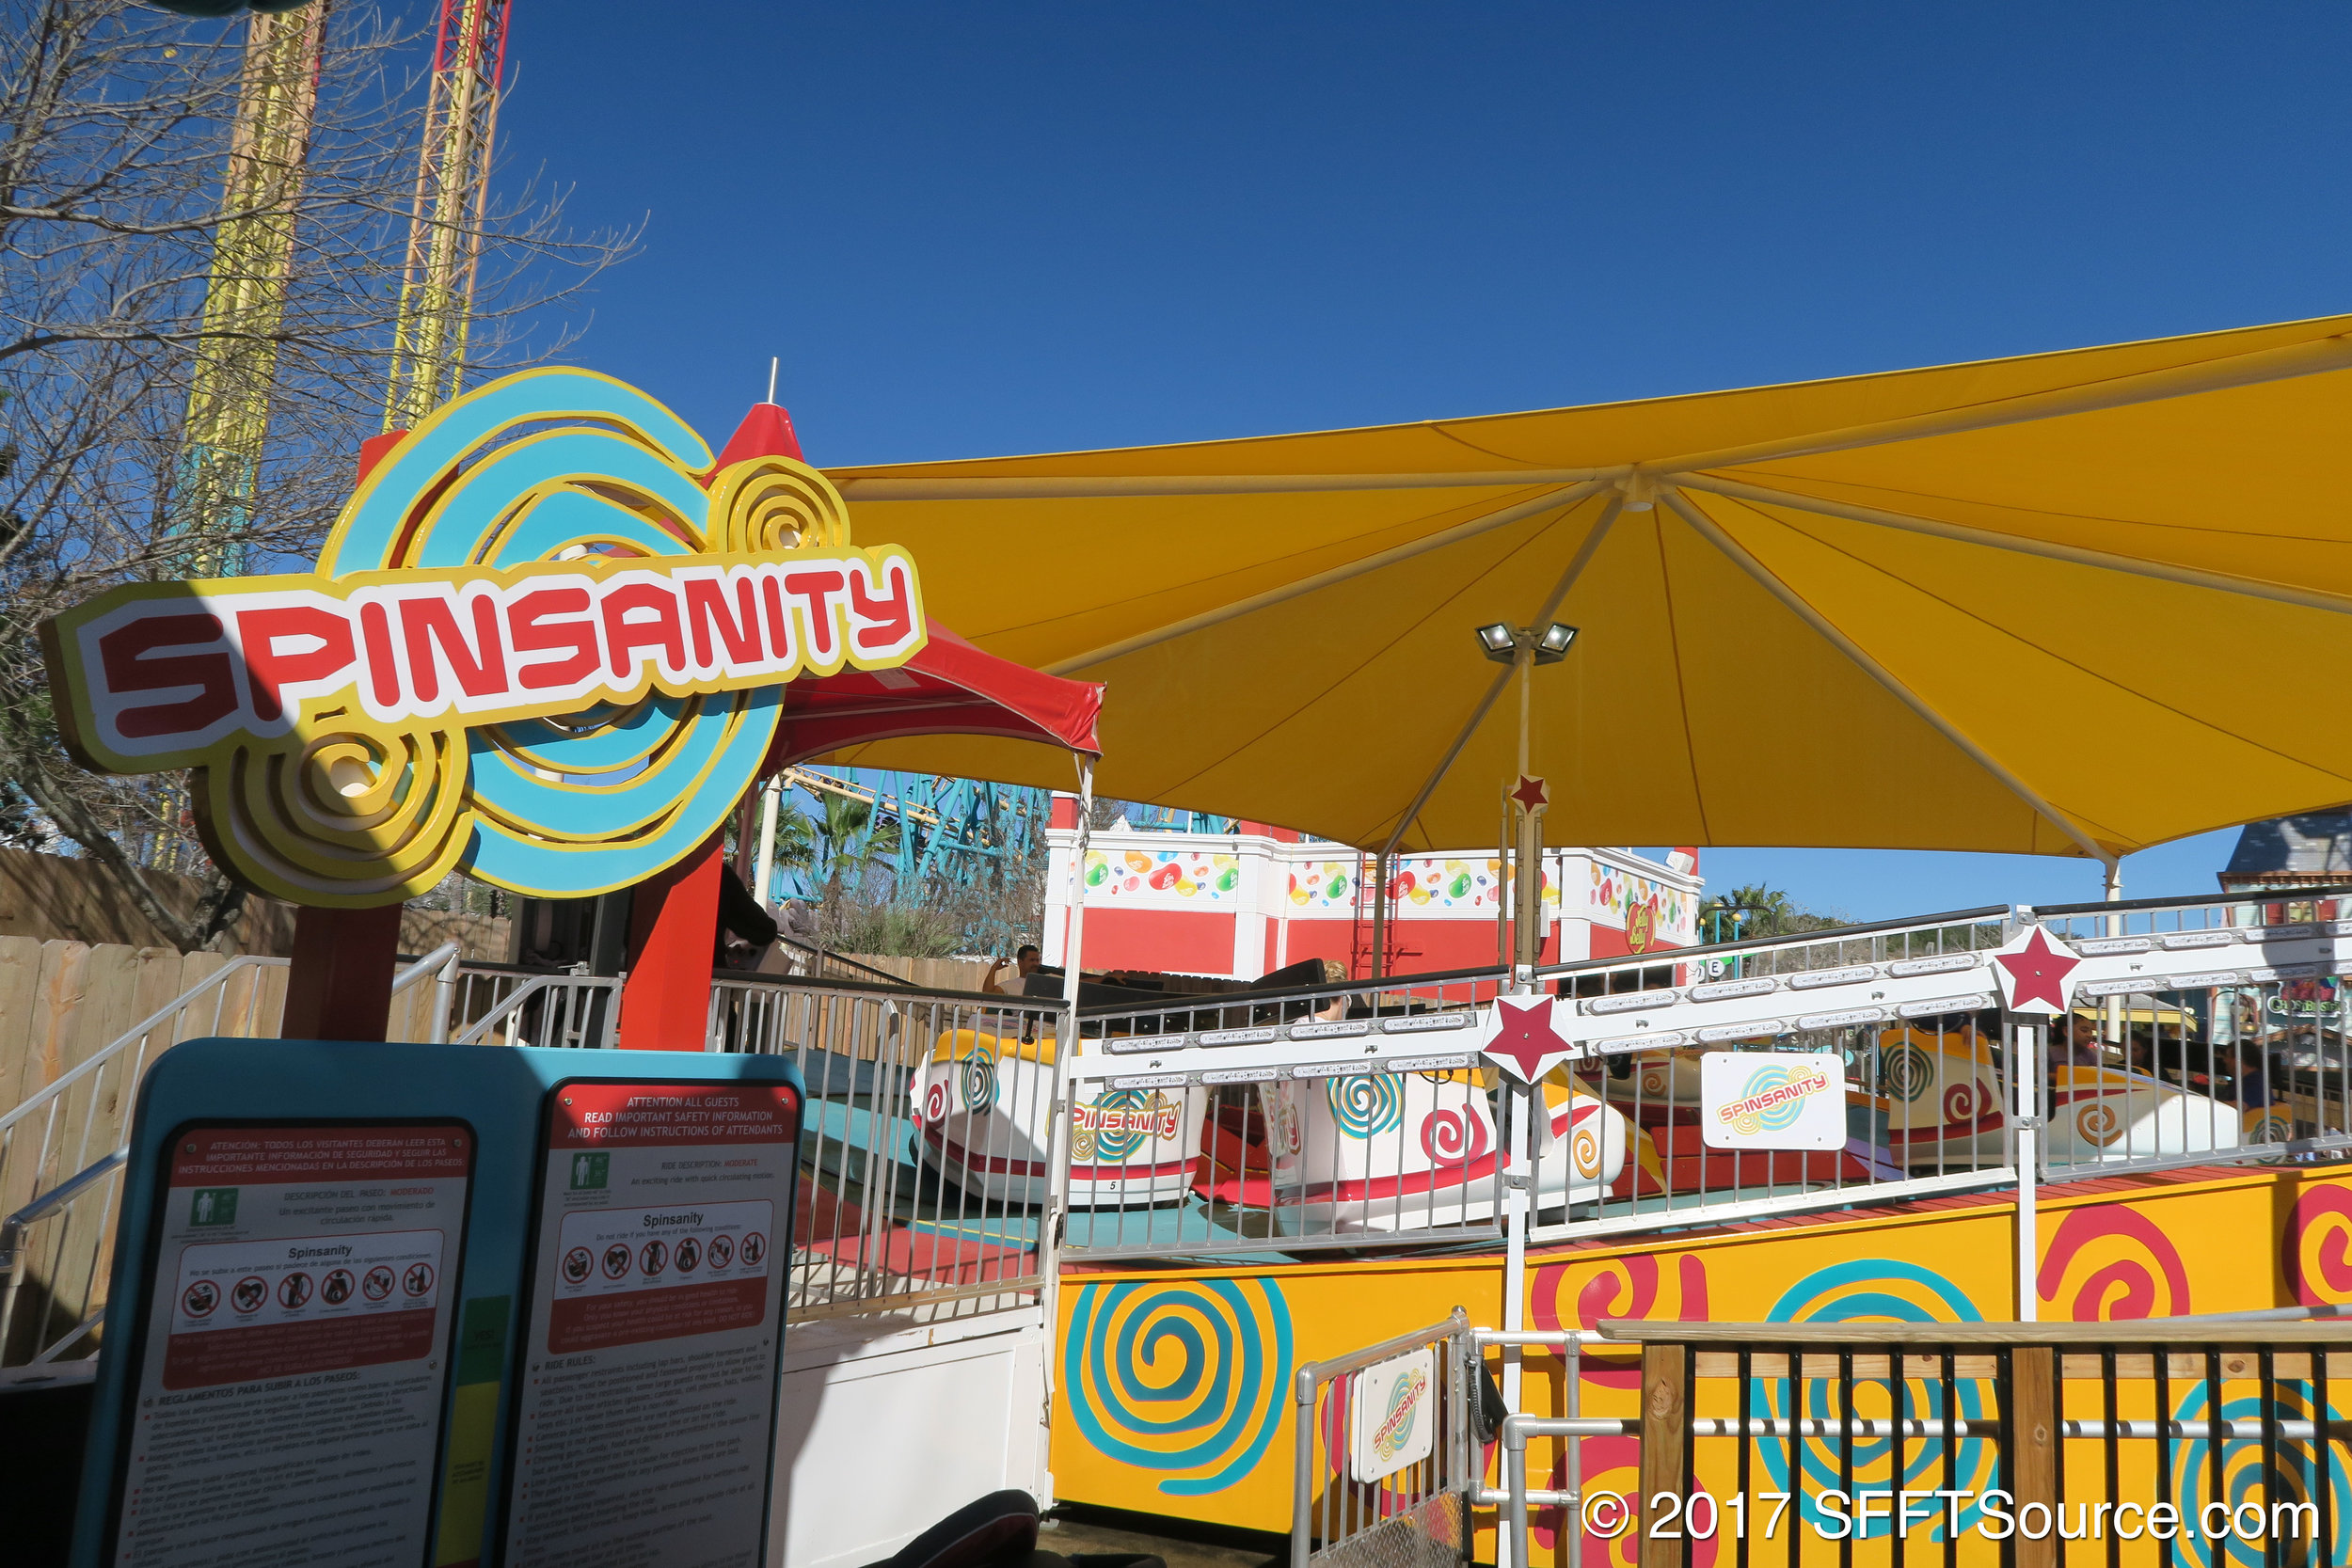 The main entrance/sign to Spinsanity.